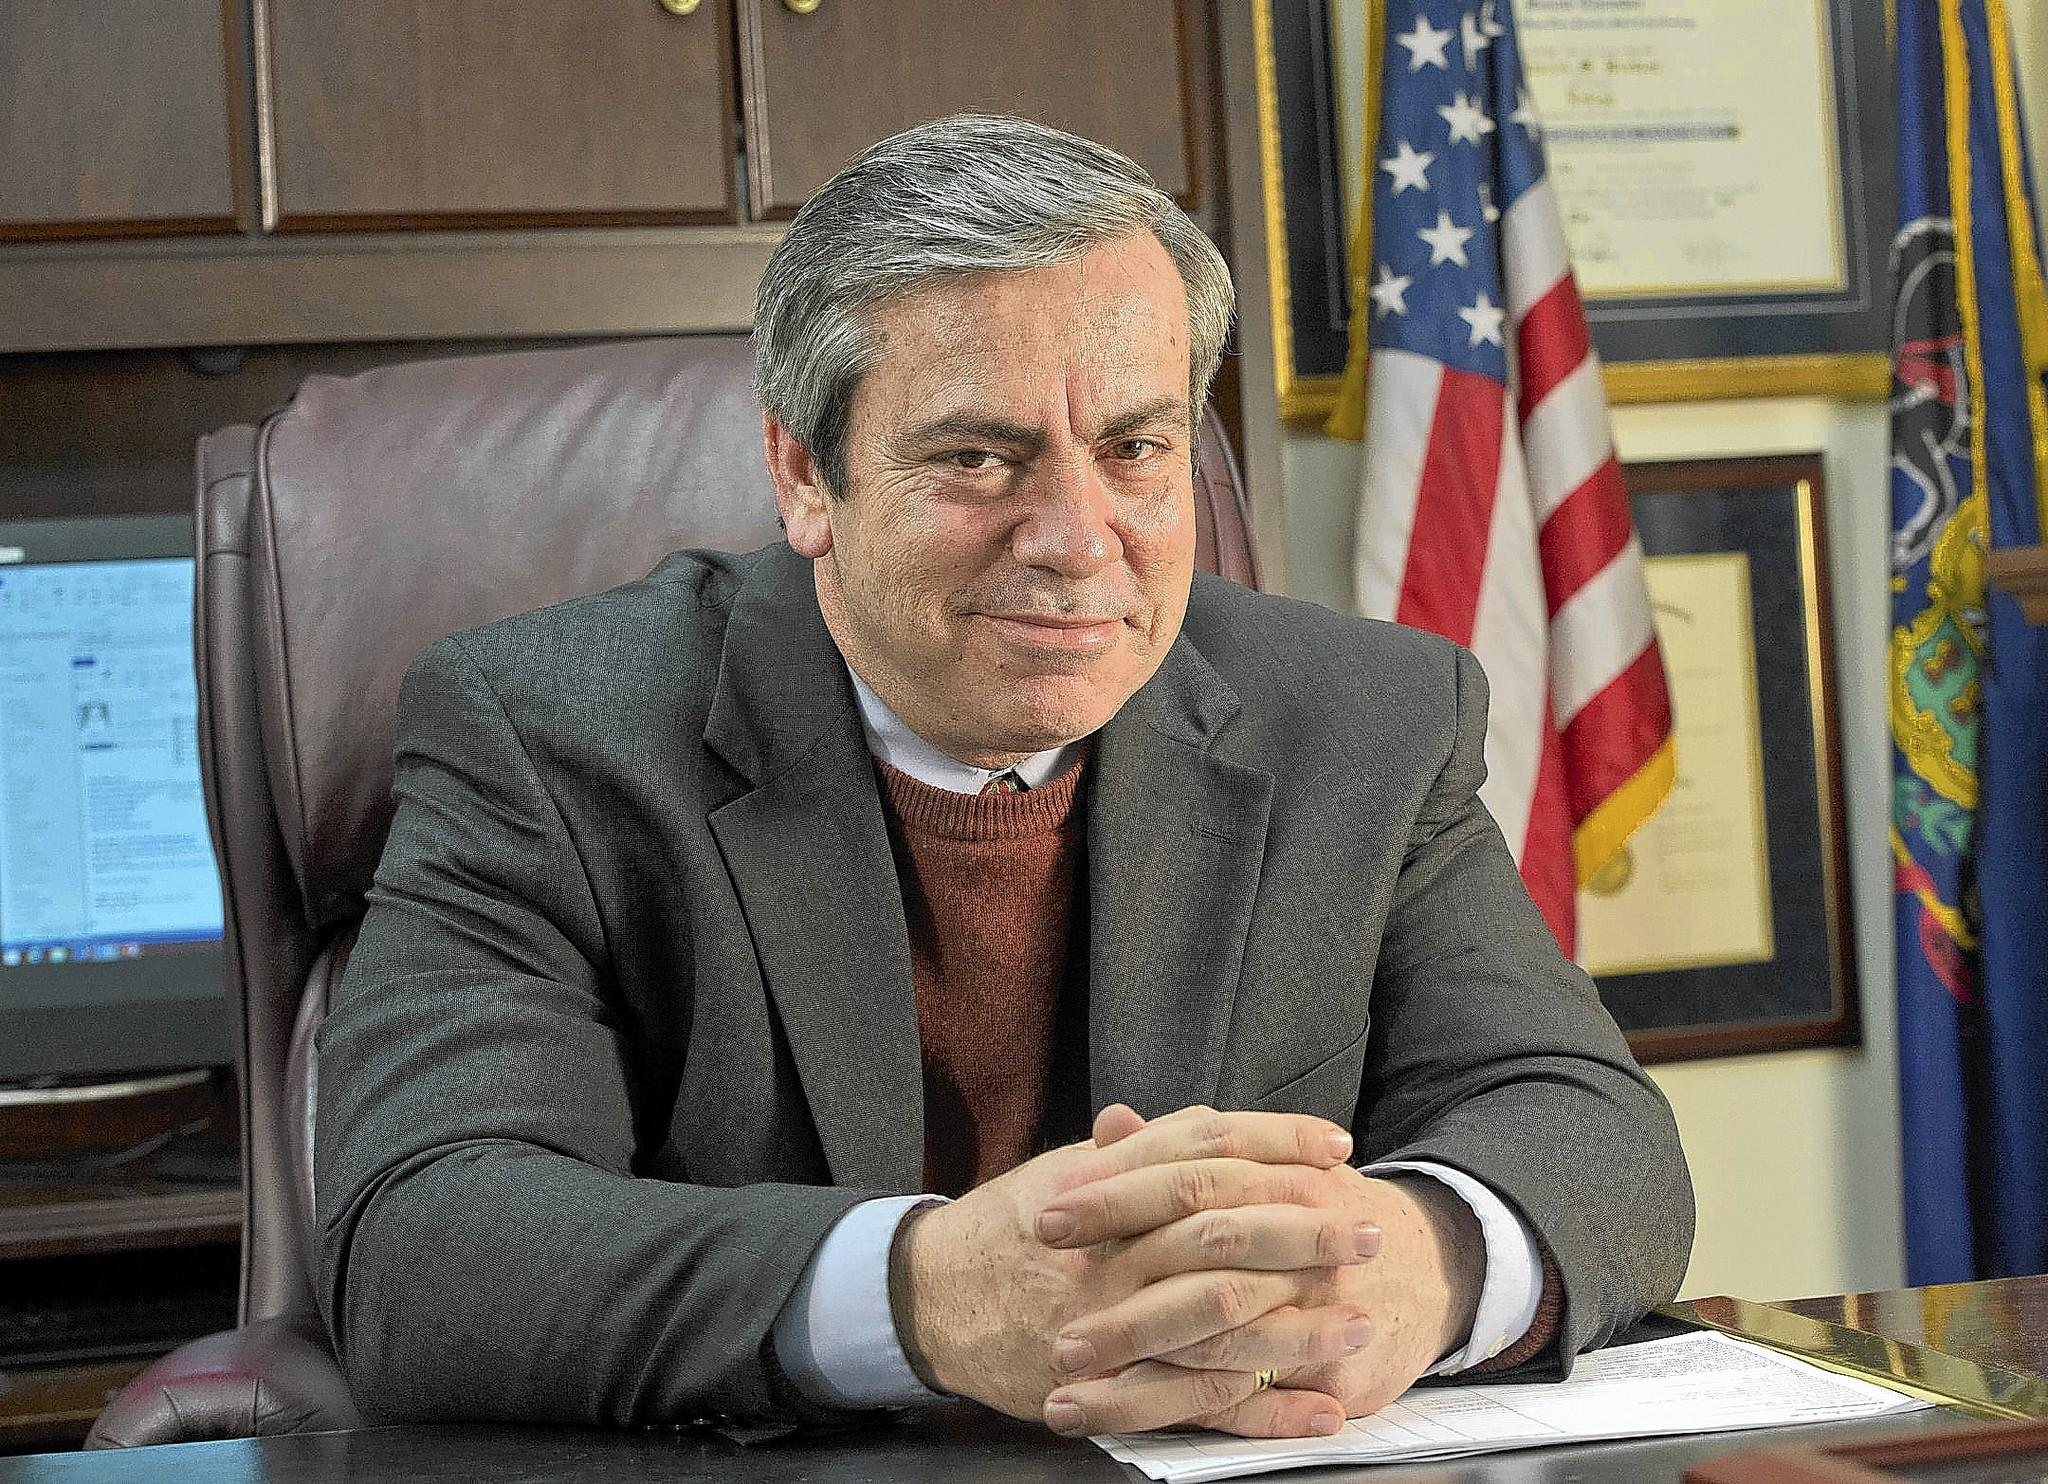 State Sen. Pat Browne in 2009 drafted legislation to unlock millions of dollars in development potential for downtown Allentown, planting the seeds for the city's rebirth.